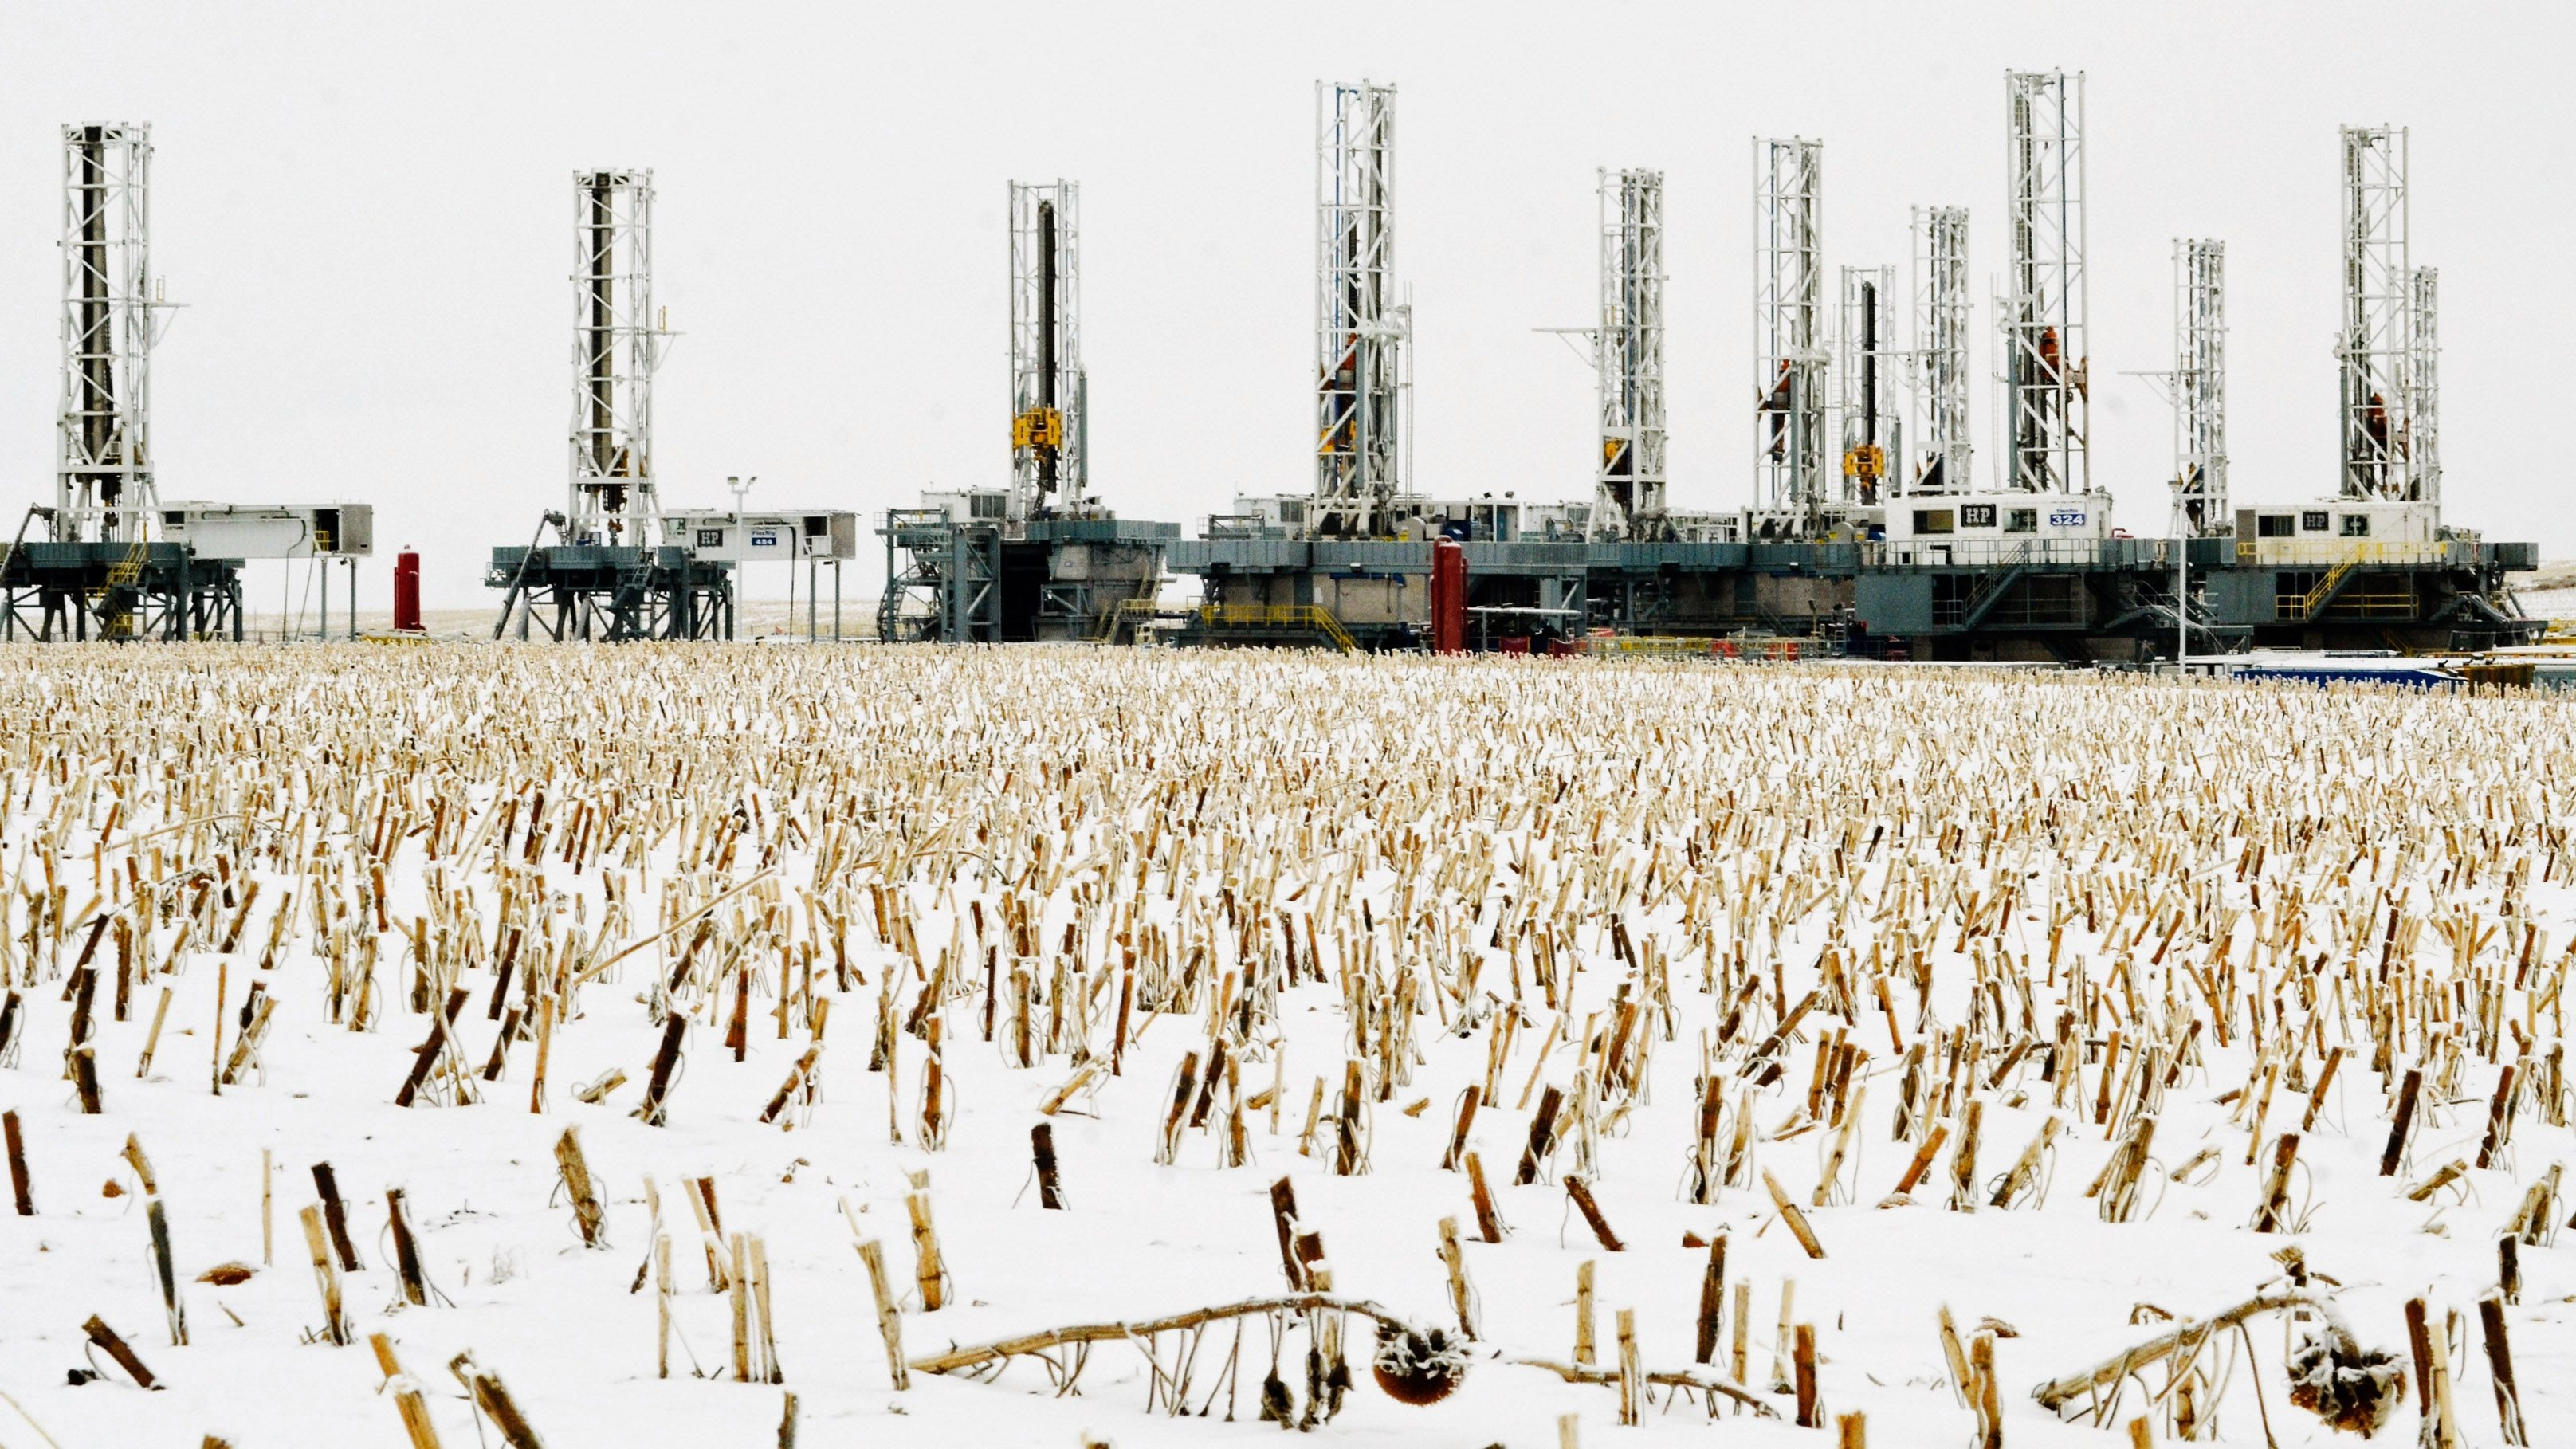 Sunflowers stalks punctuate the snow in a field near dormant oil drilling rigs which have been stacked in Dickinson, North Dakota